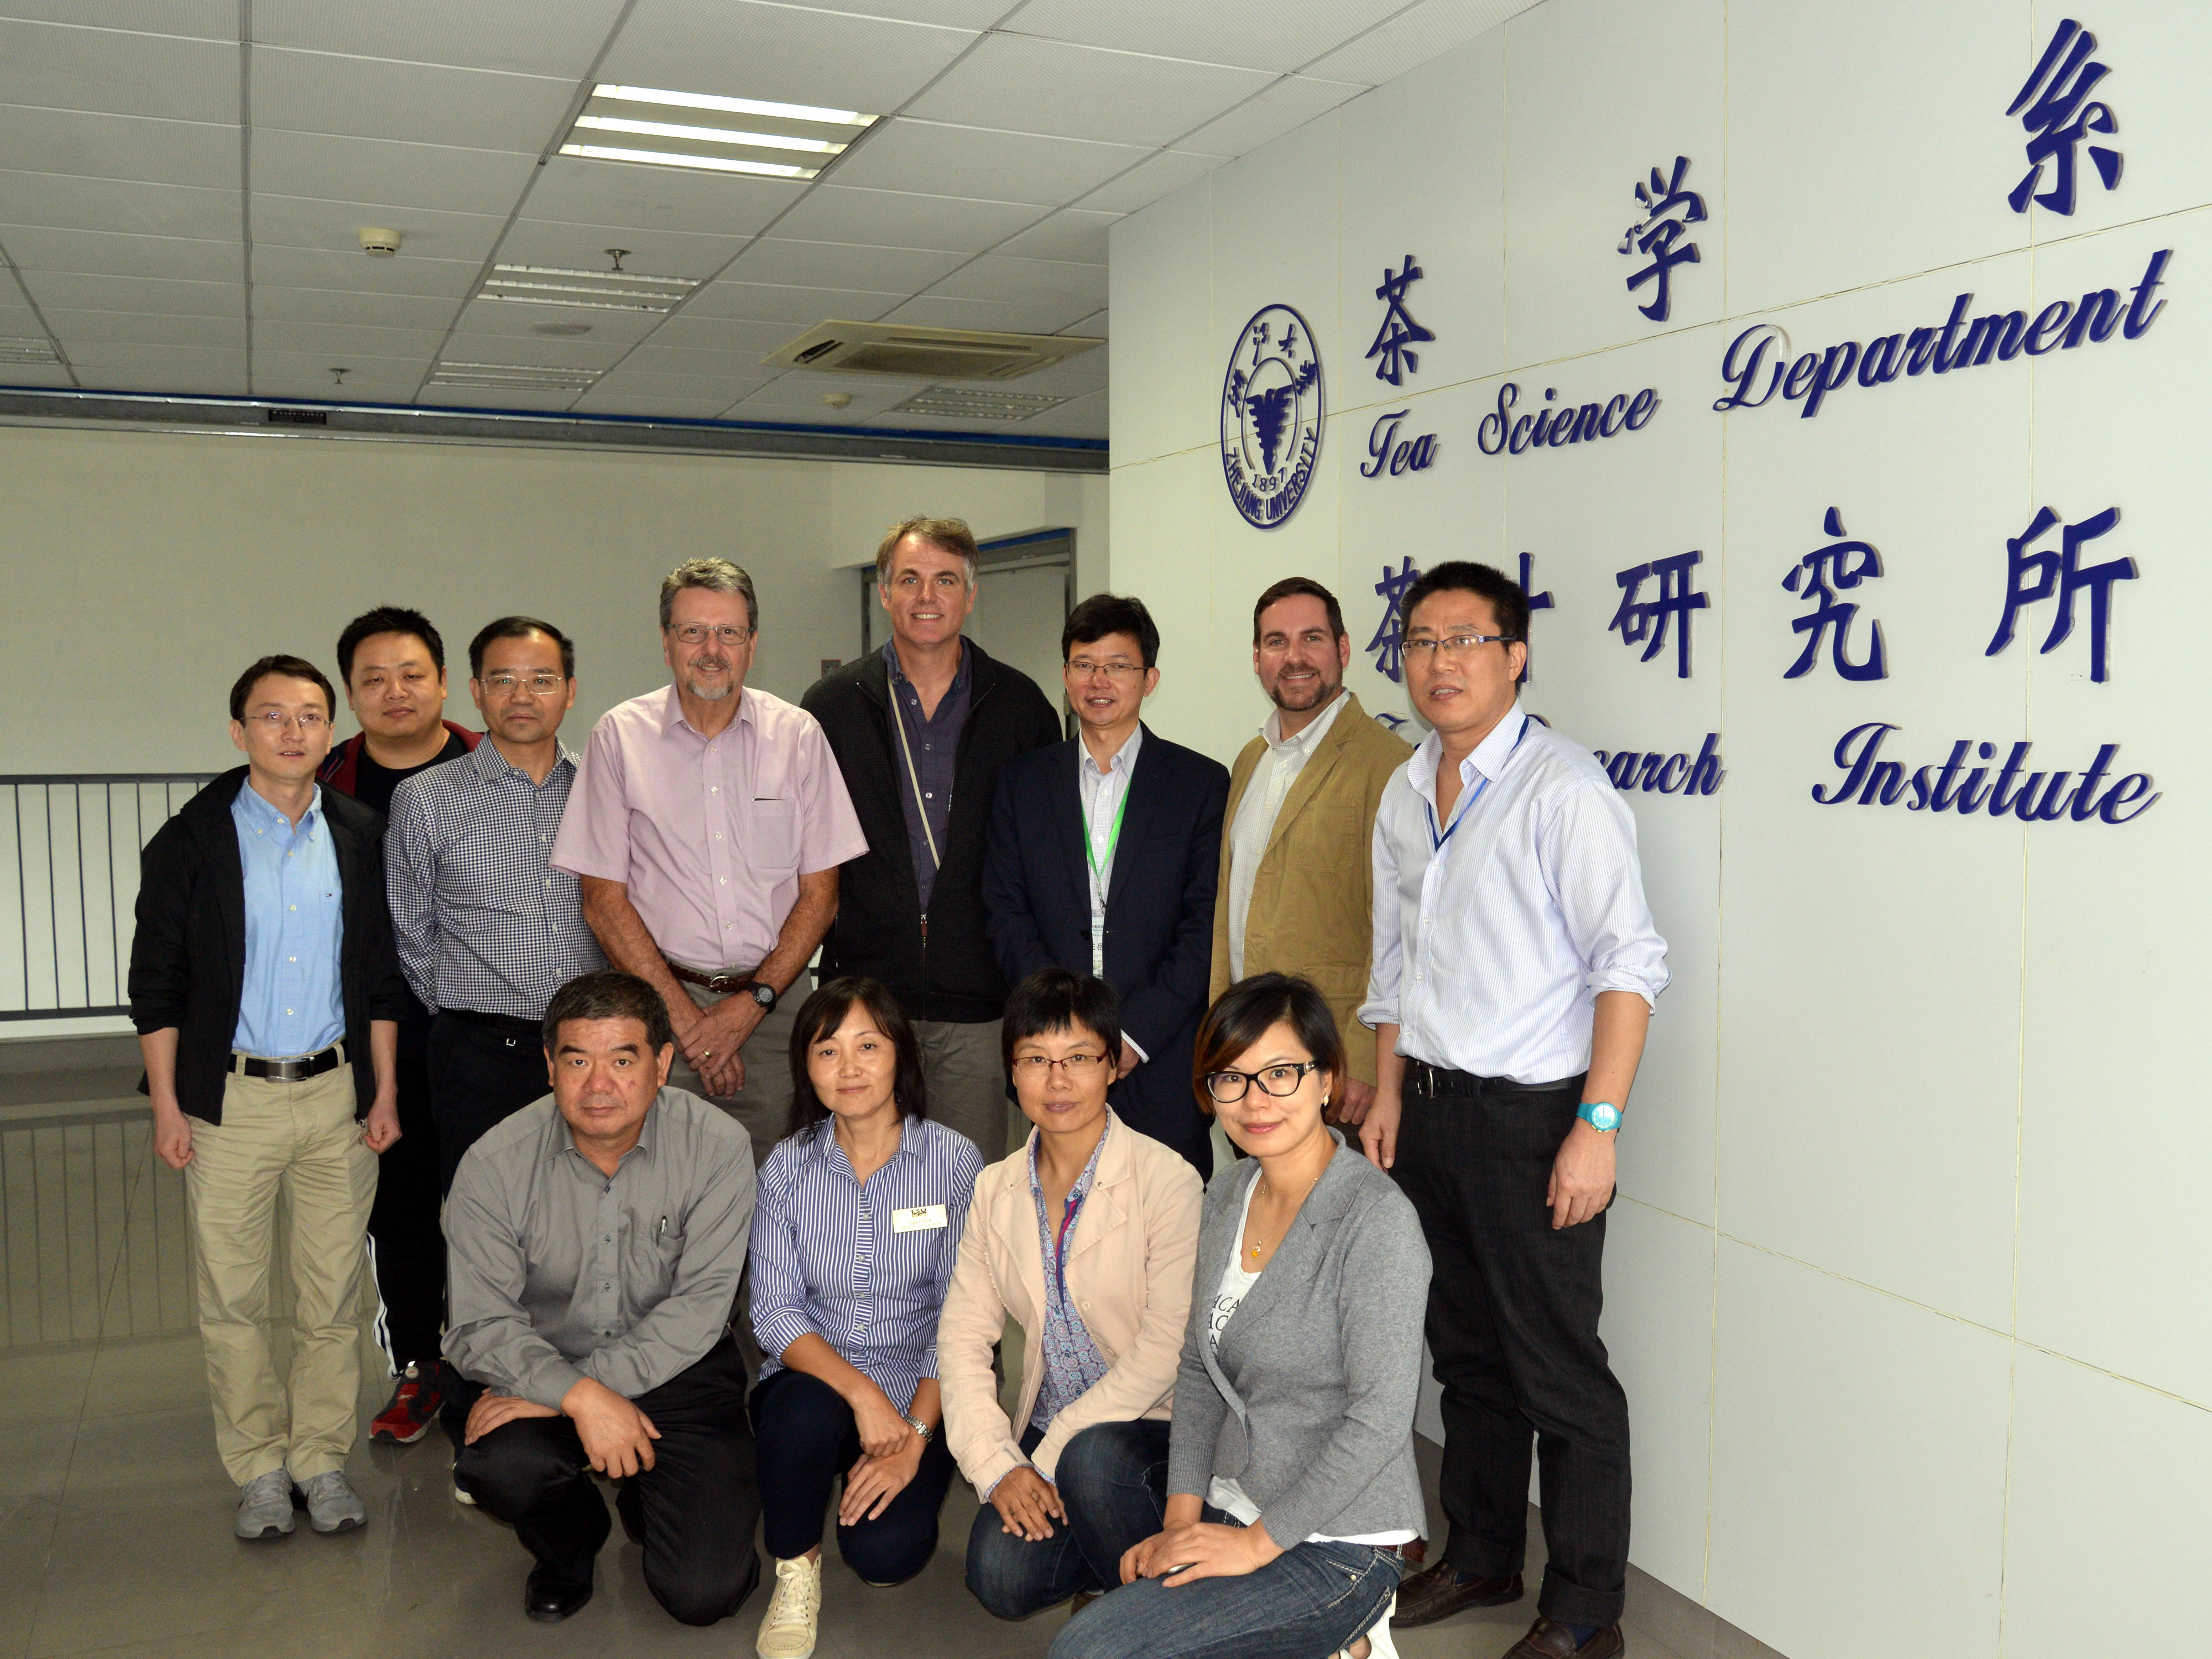 University of Georgia horticulture Professor Donglin Zhang; bottom row, far left; worked with a team of American and Chinese scientists in fall 2016 to help identify tea varieties that might work well in the American south. Zhang and his colleagues traveled to China as part of a research trip sponsored by the USDA and the Chinese Ministry of Agriculture.